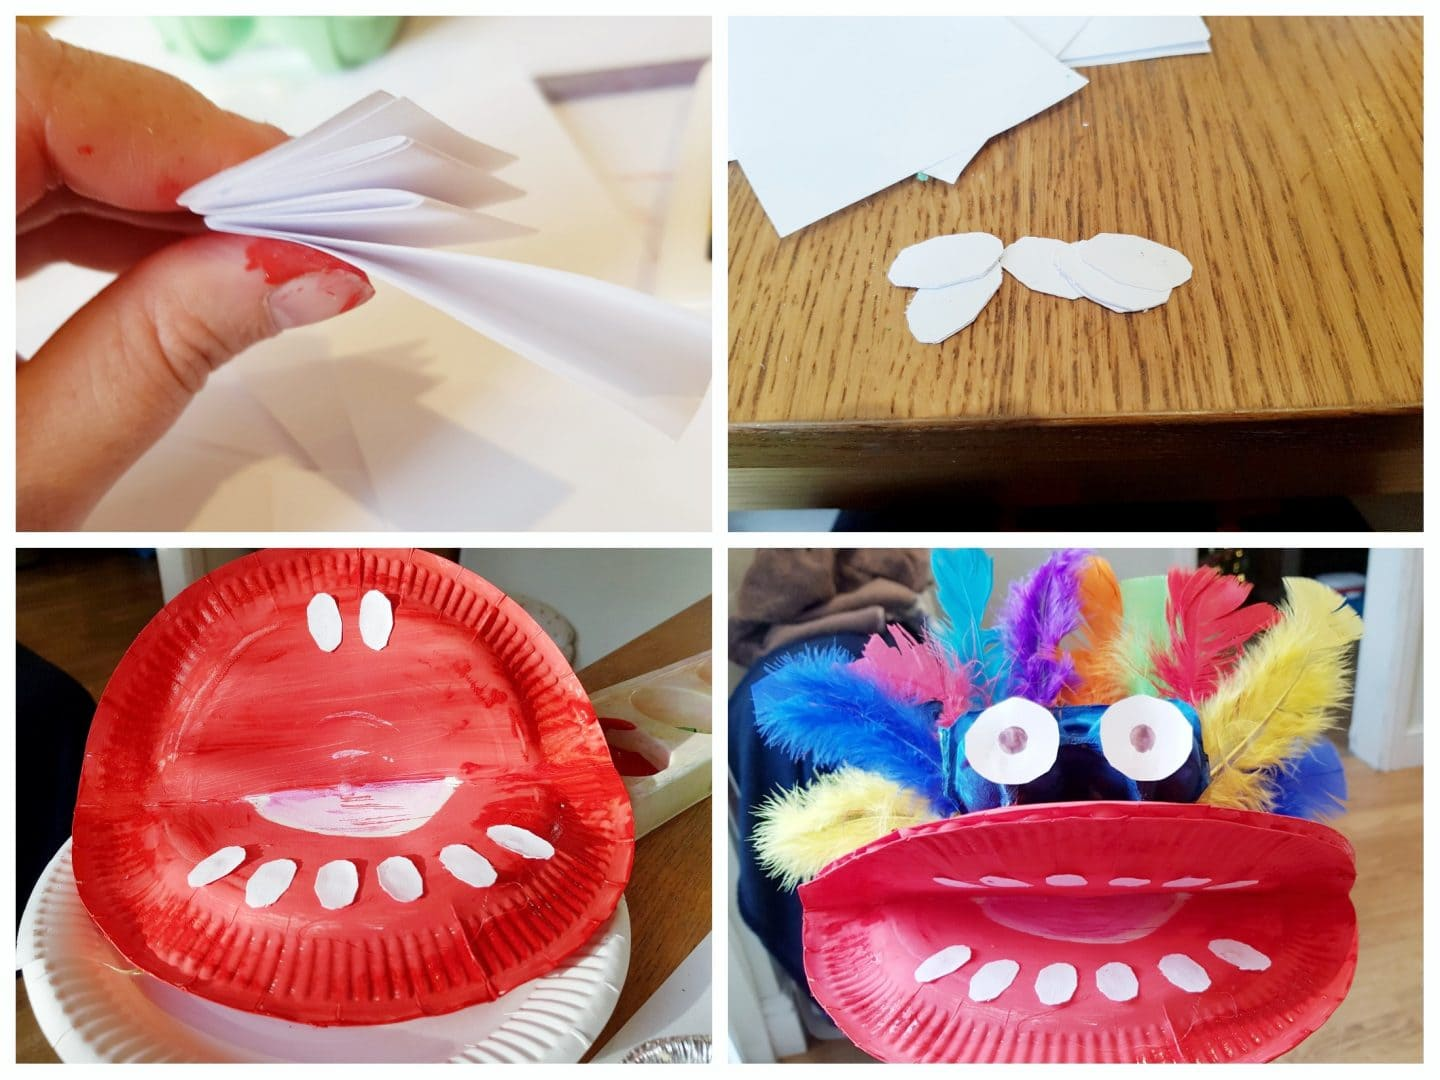 Collage of Chinese Dragon Puppet craft steps - attaching the teeth, eyes and feathers.